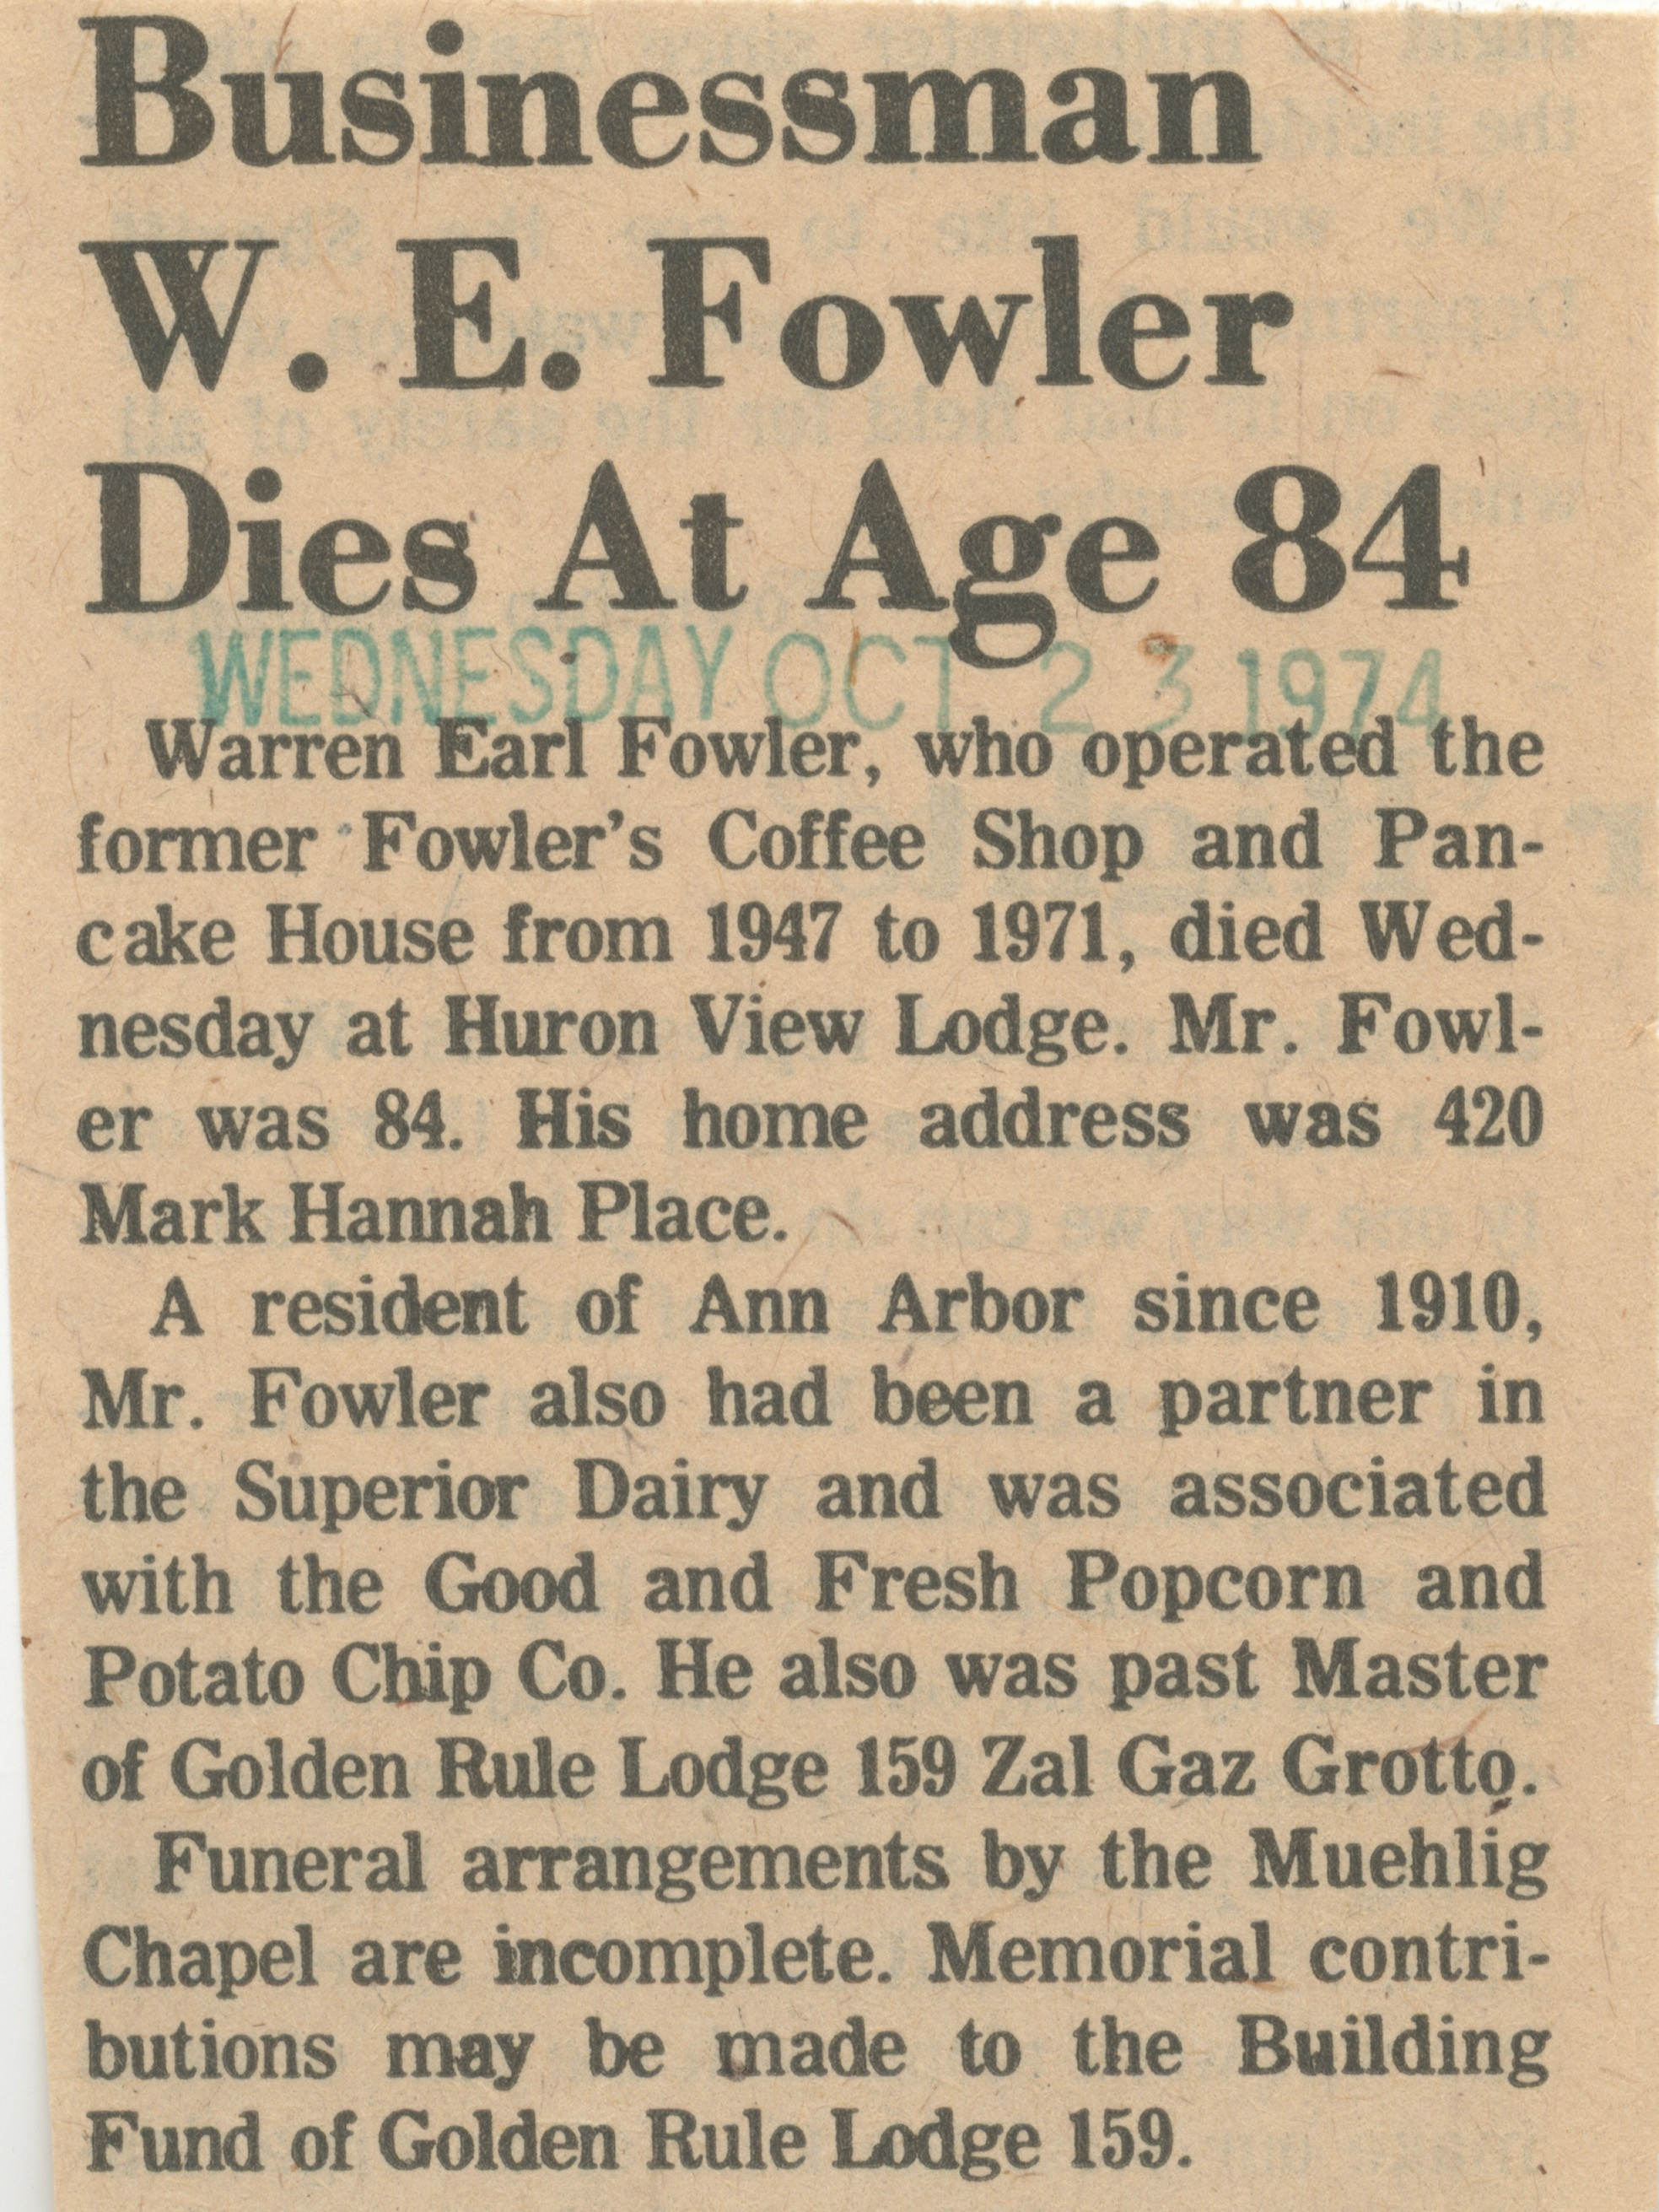 Businessman W. E. Fowler Dies At Age 84 image